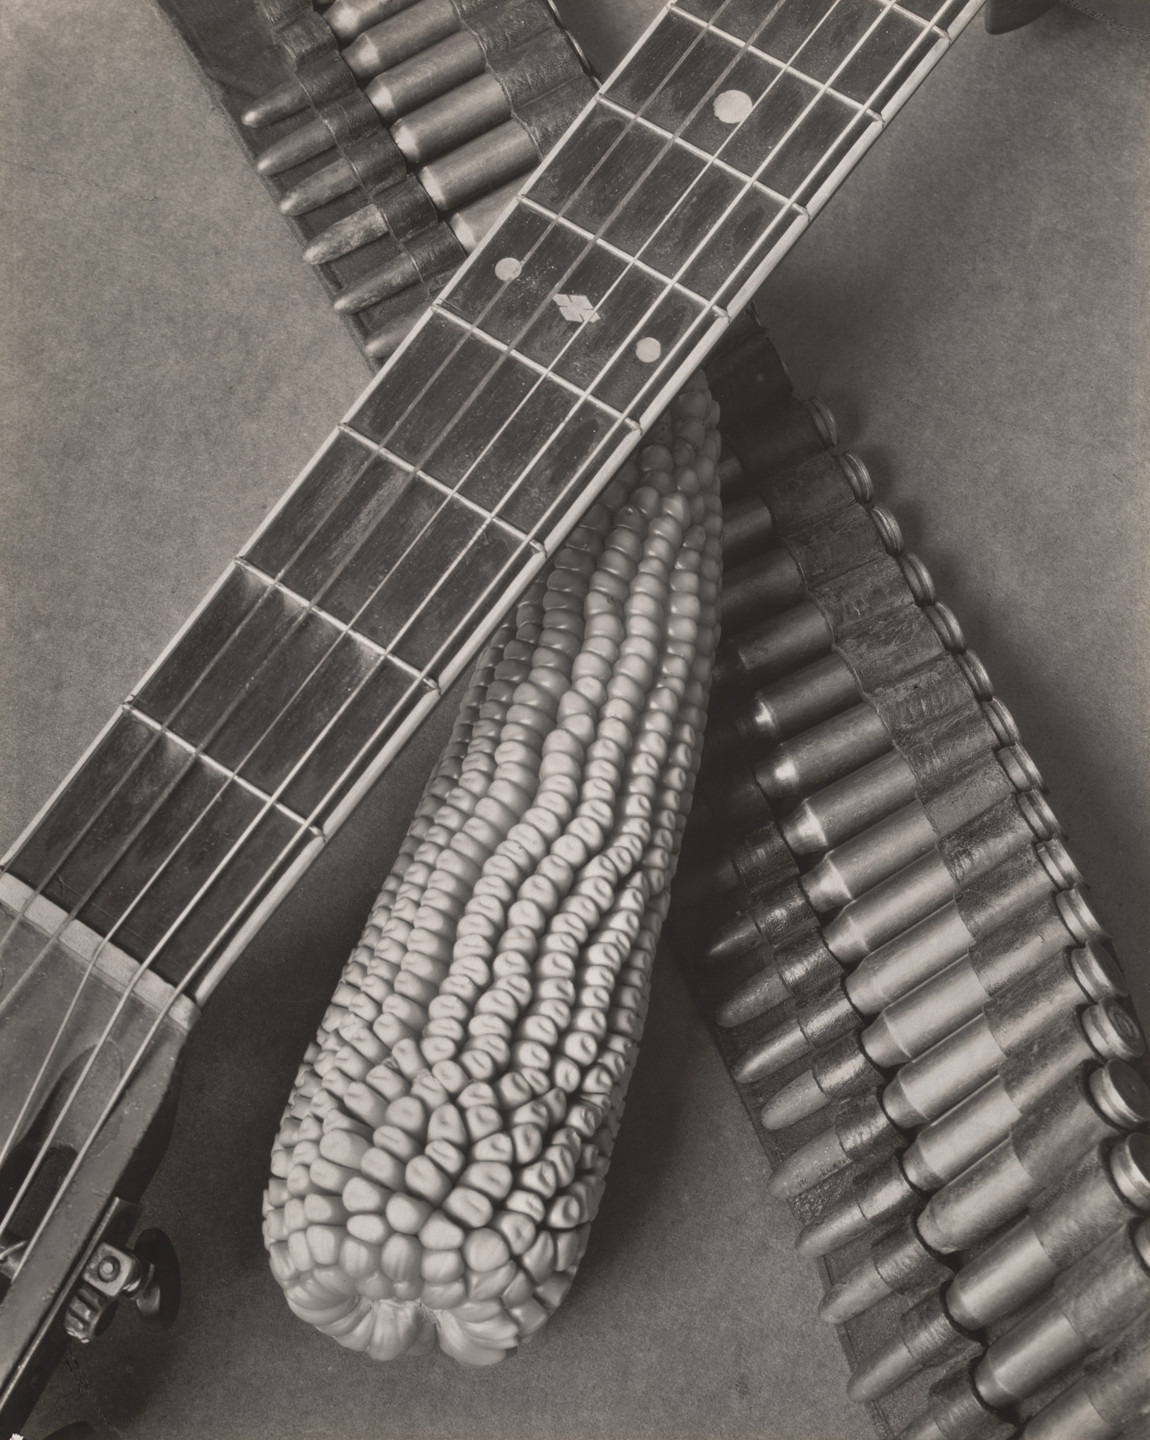 Tina Modotti. Illustration for a Mexican Song. 1927